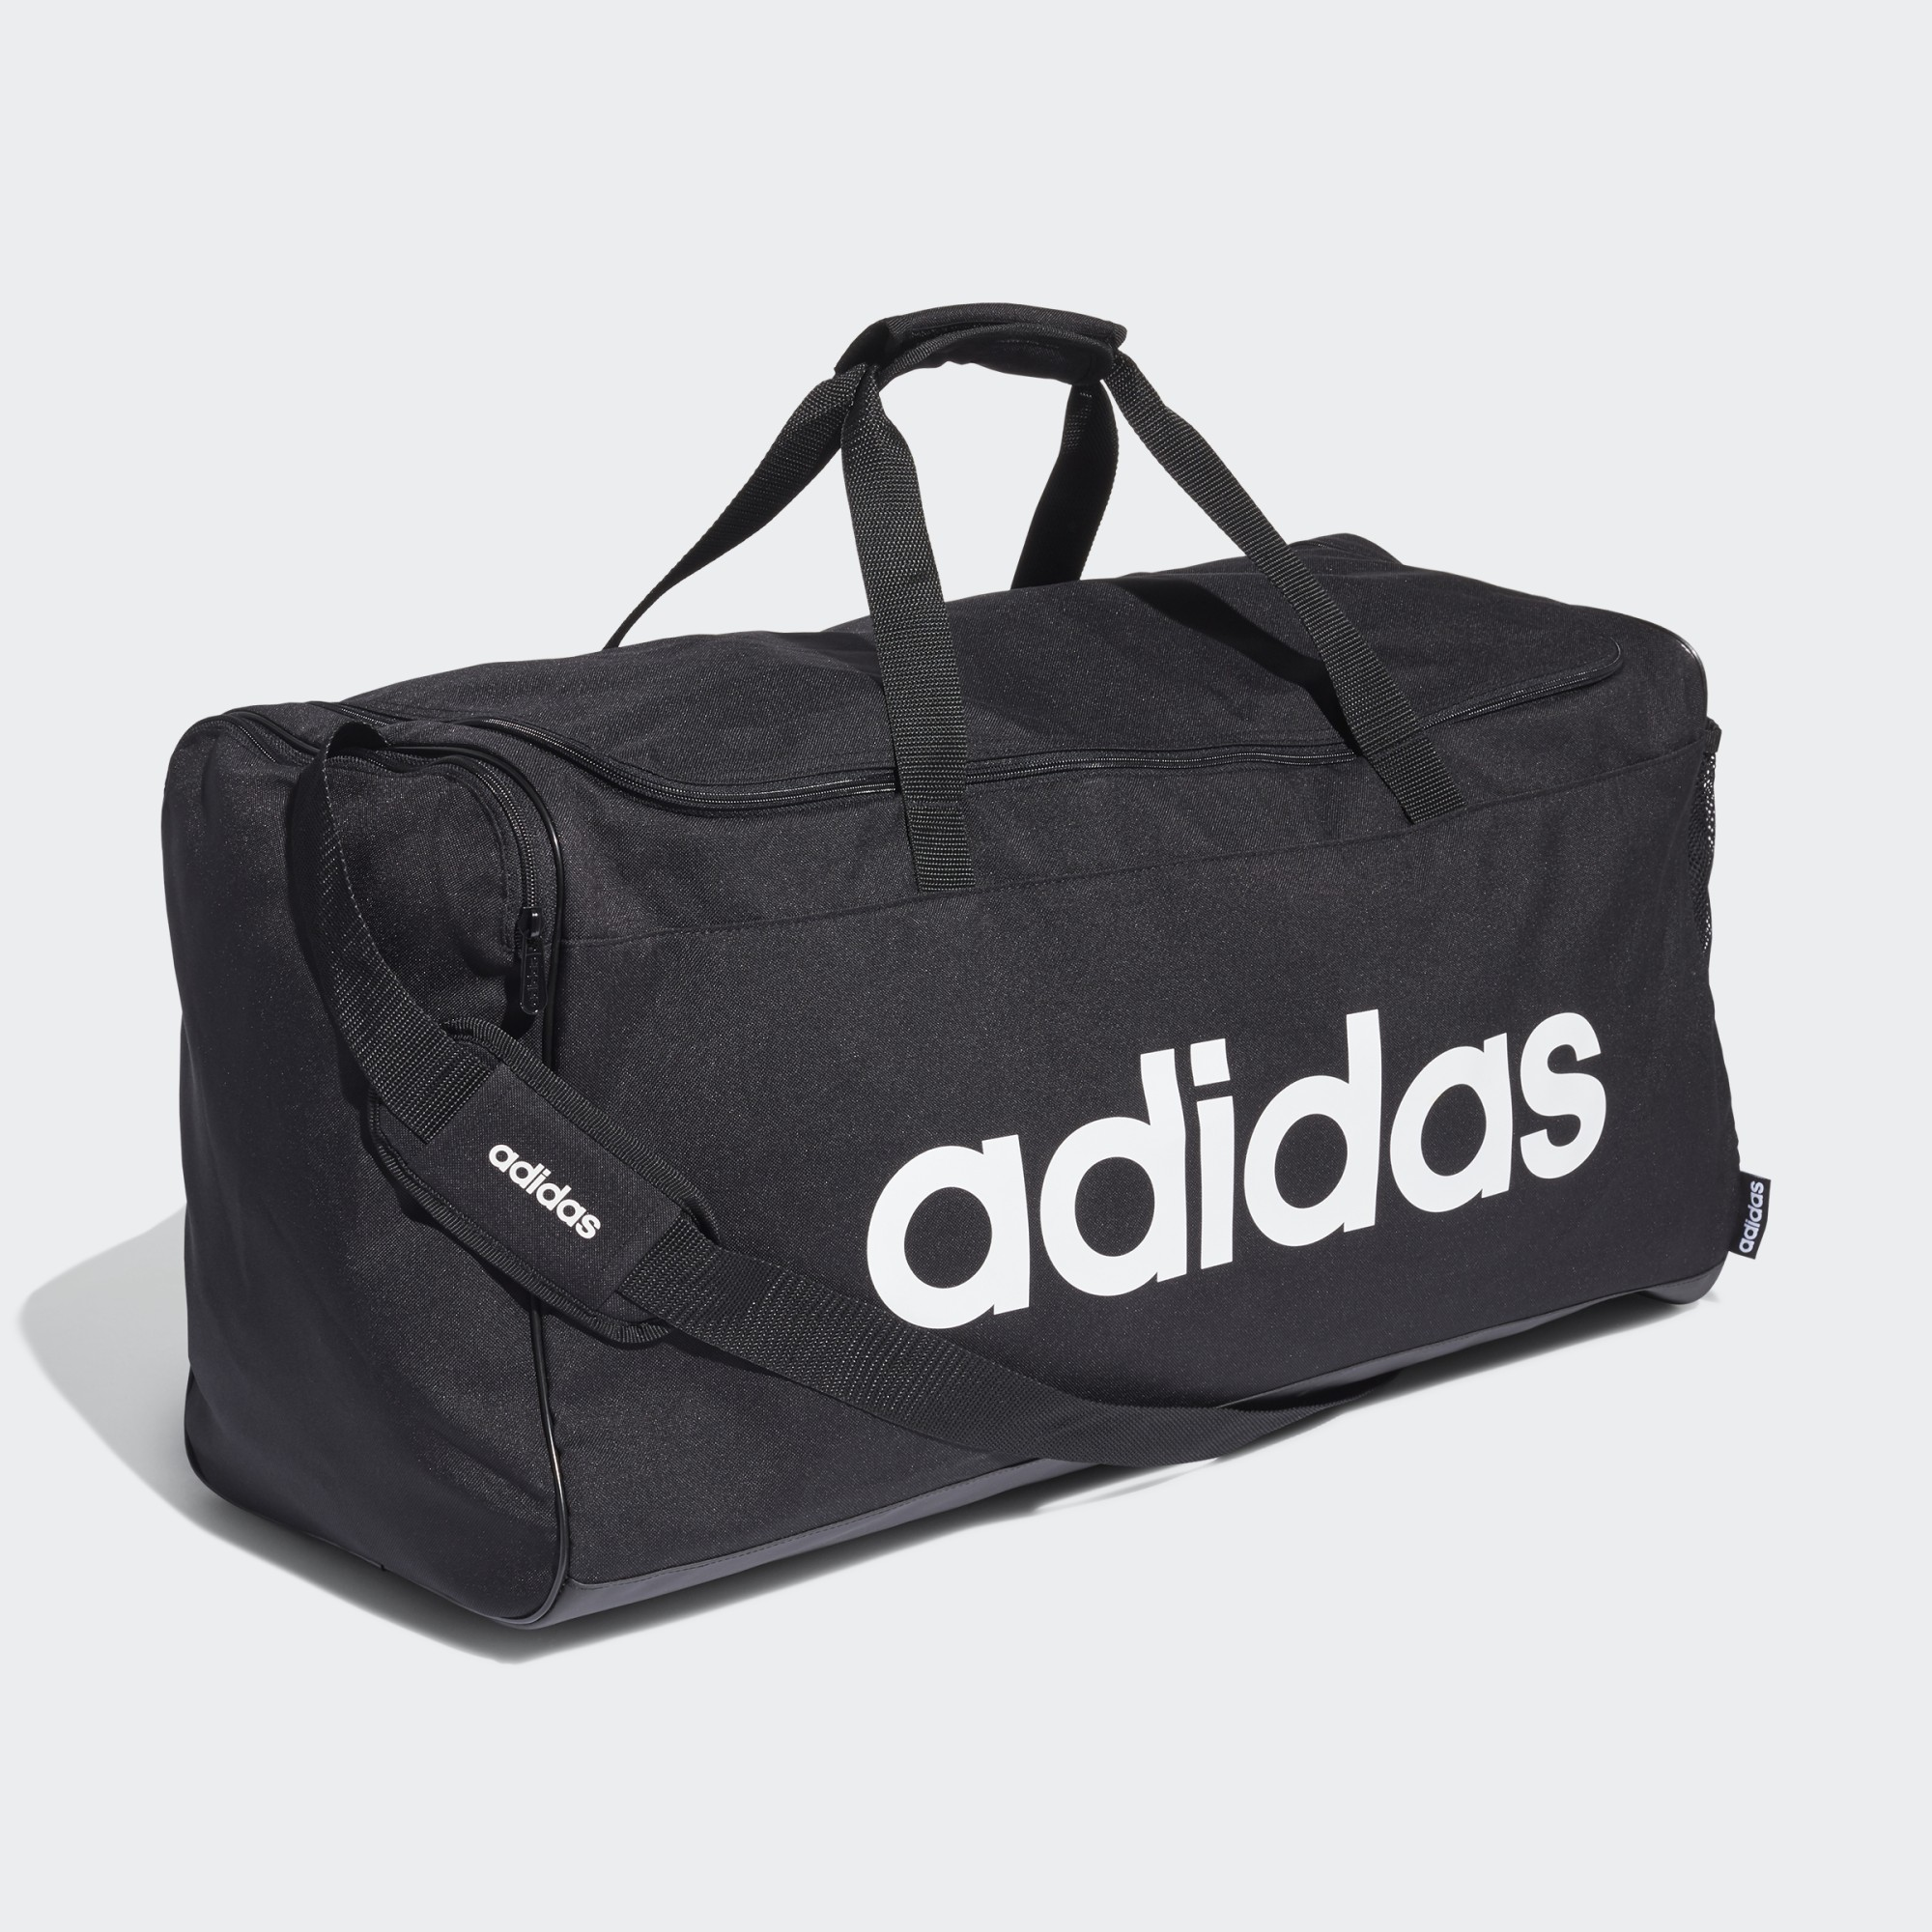 ADIDAS PERFORMANCE Sporttas in Zwart / Wit iQUUxDny